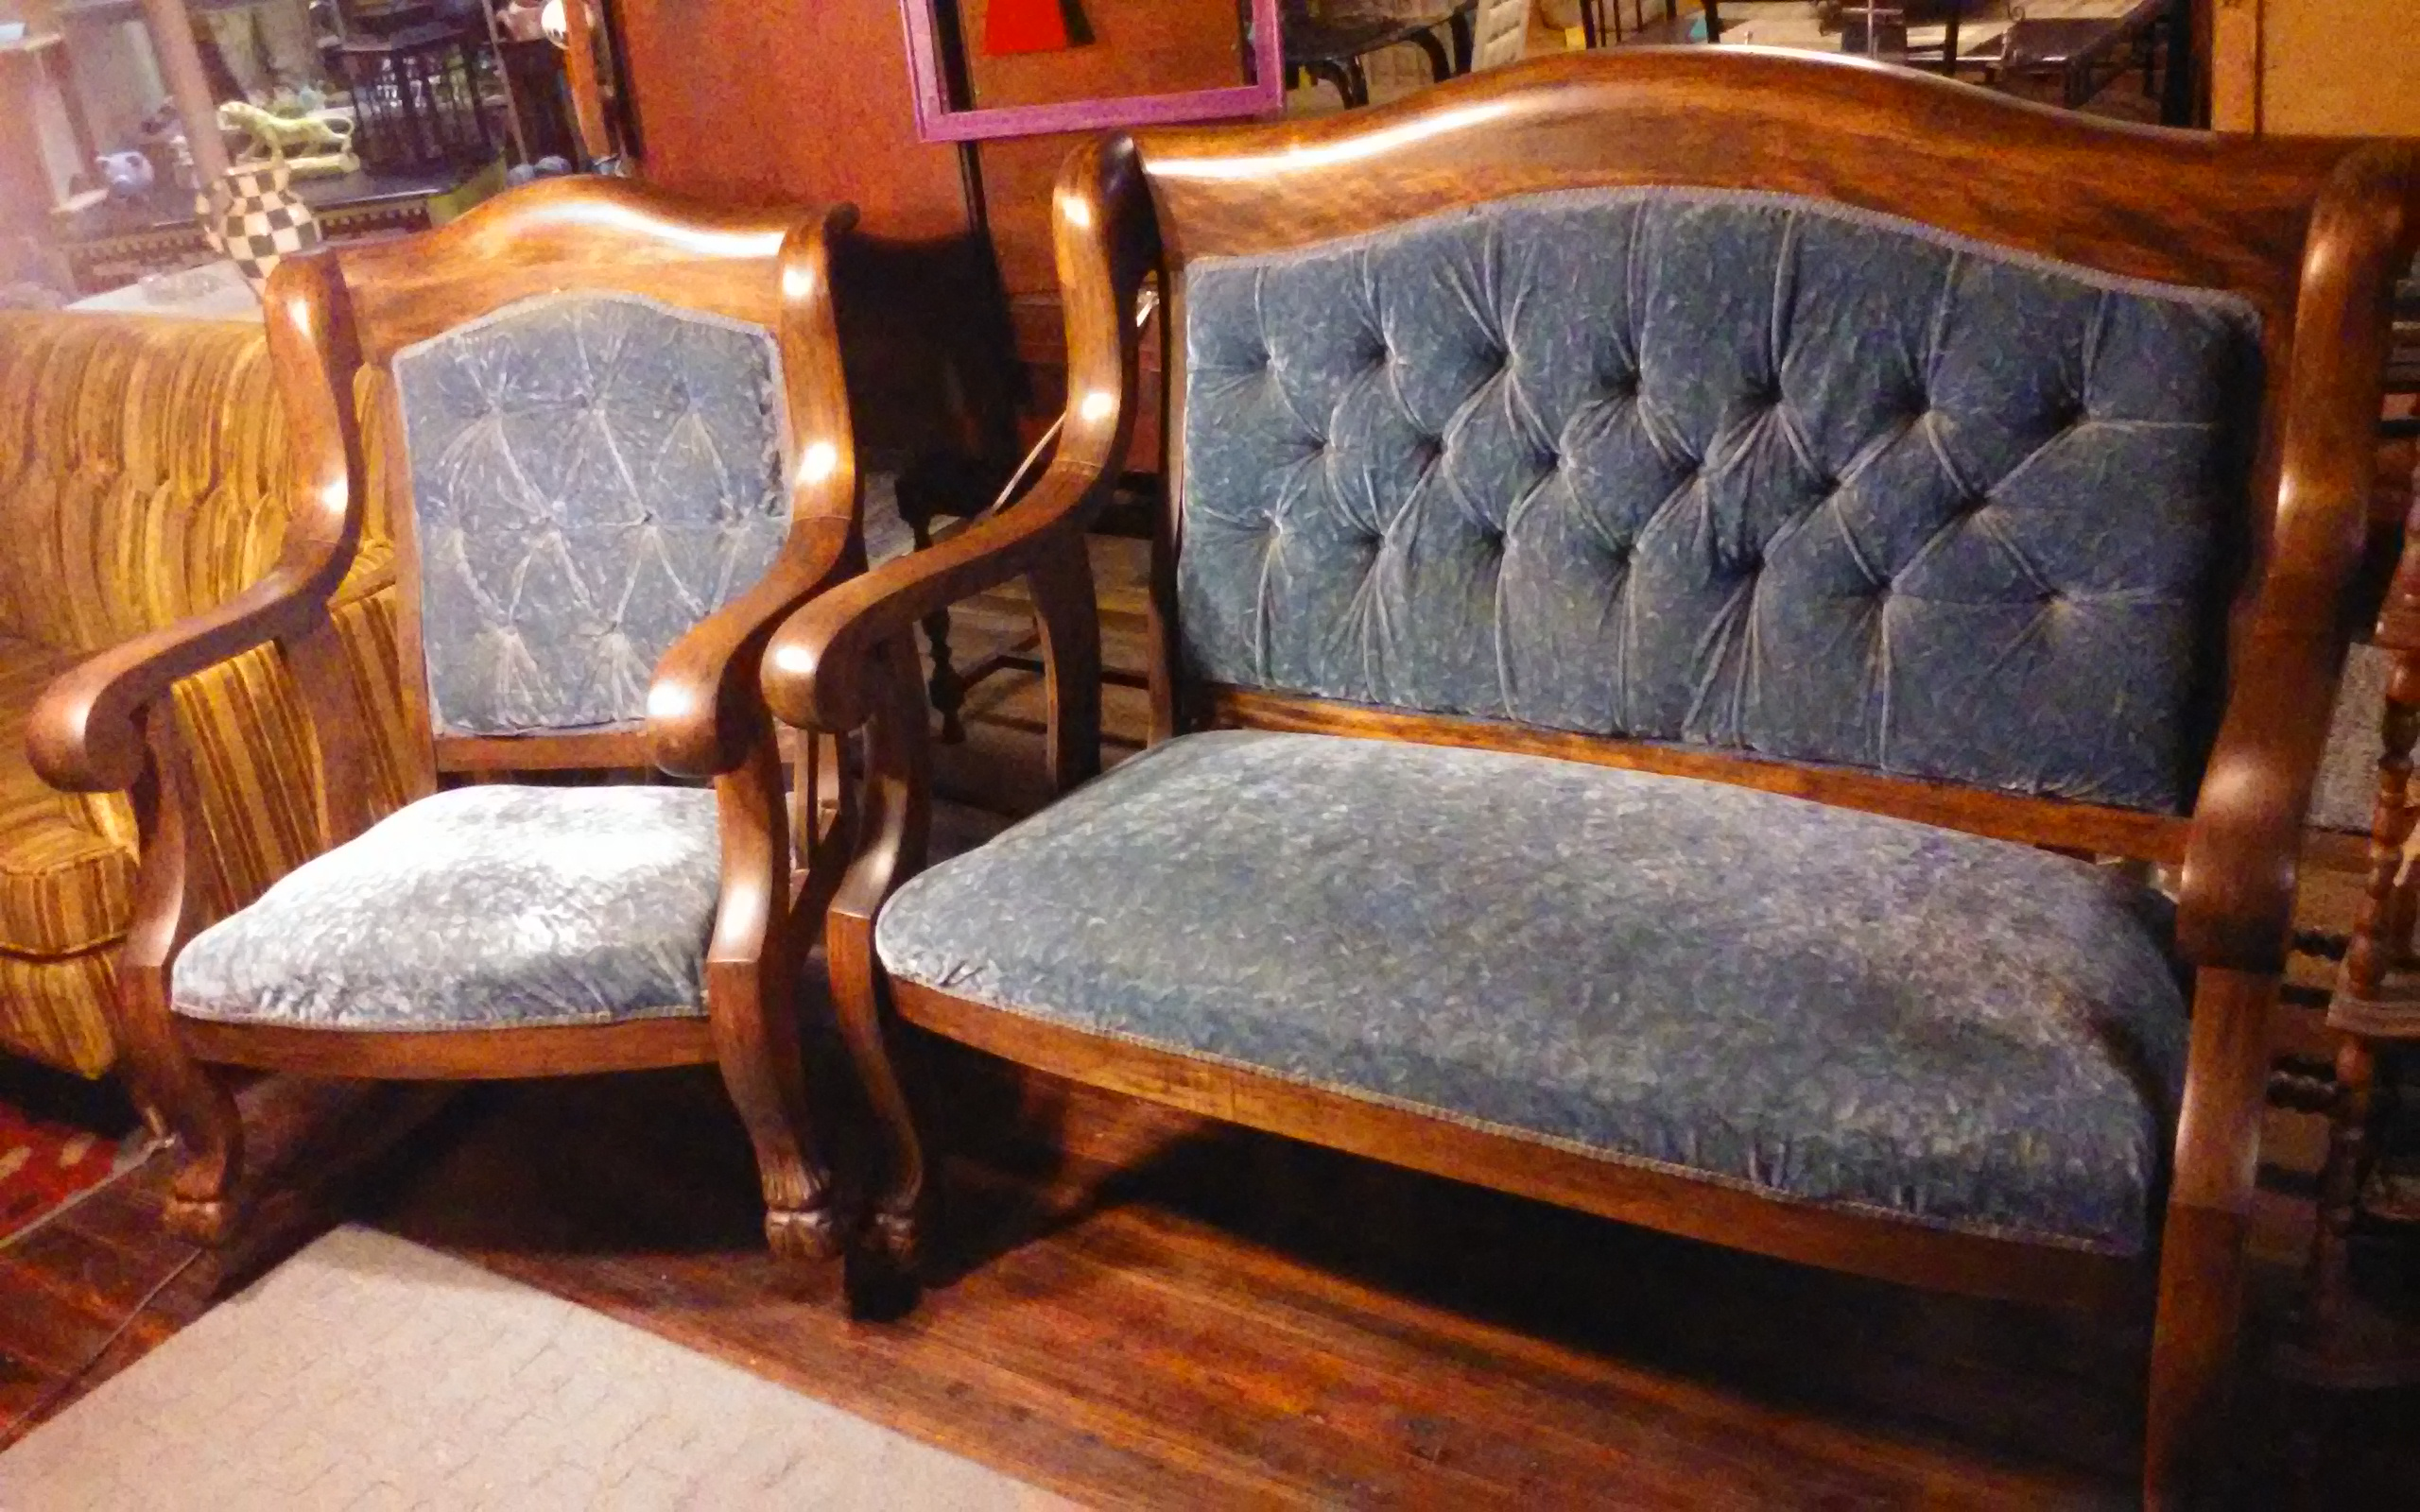 1800 - early 1900 2 piece parlor furniture settee and rocking chair ...